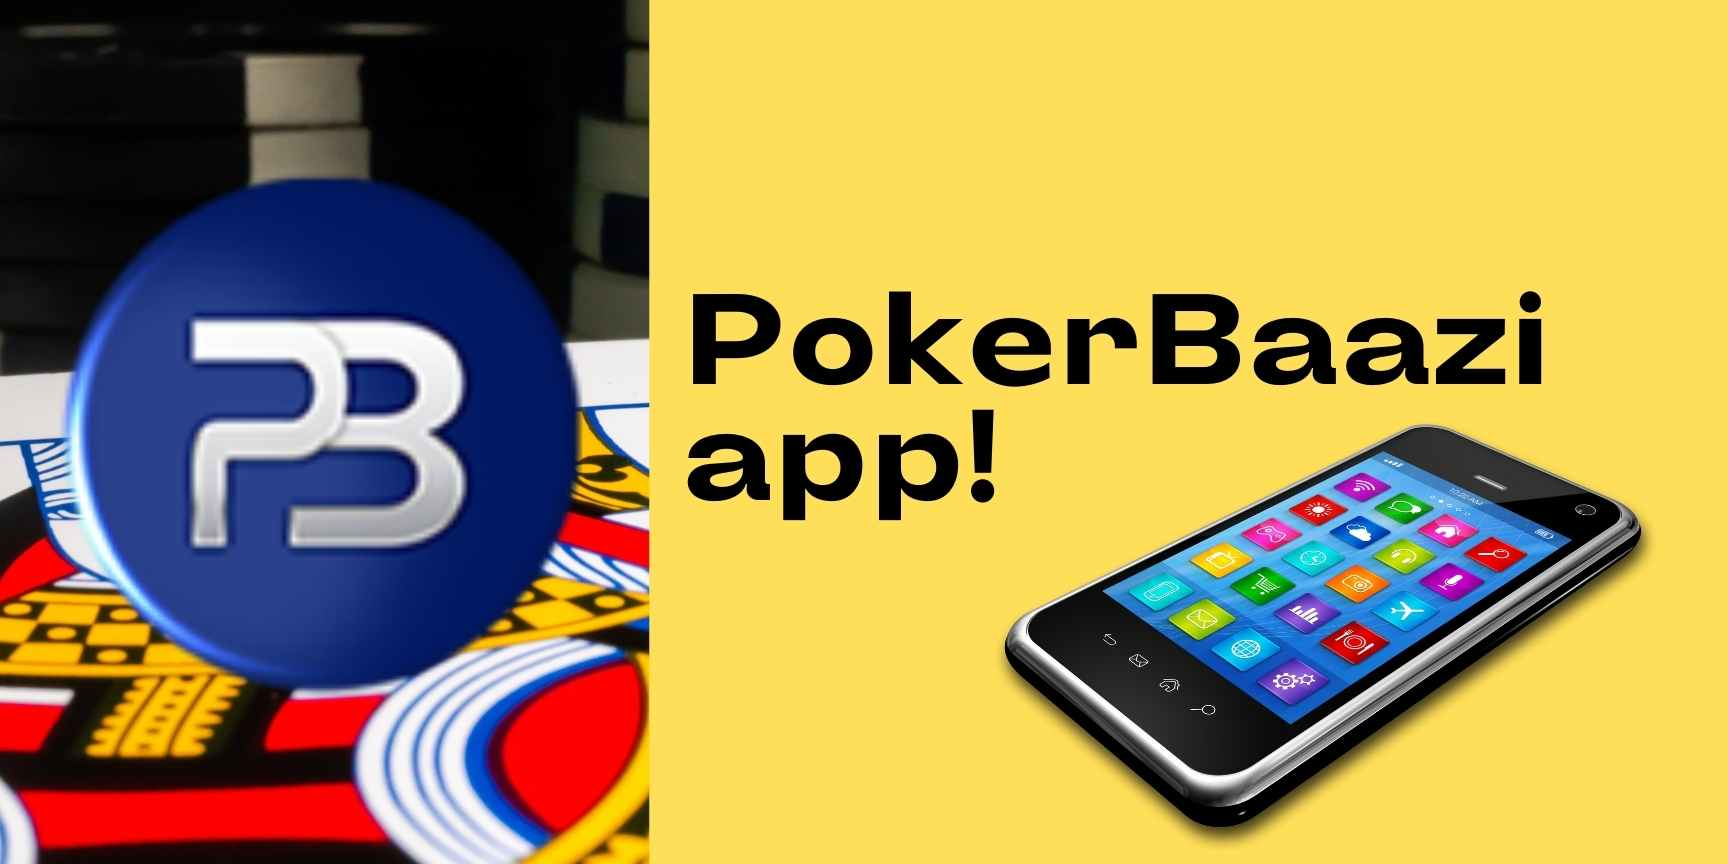 A note about the PokerBaazi app